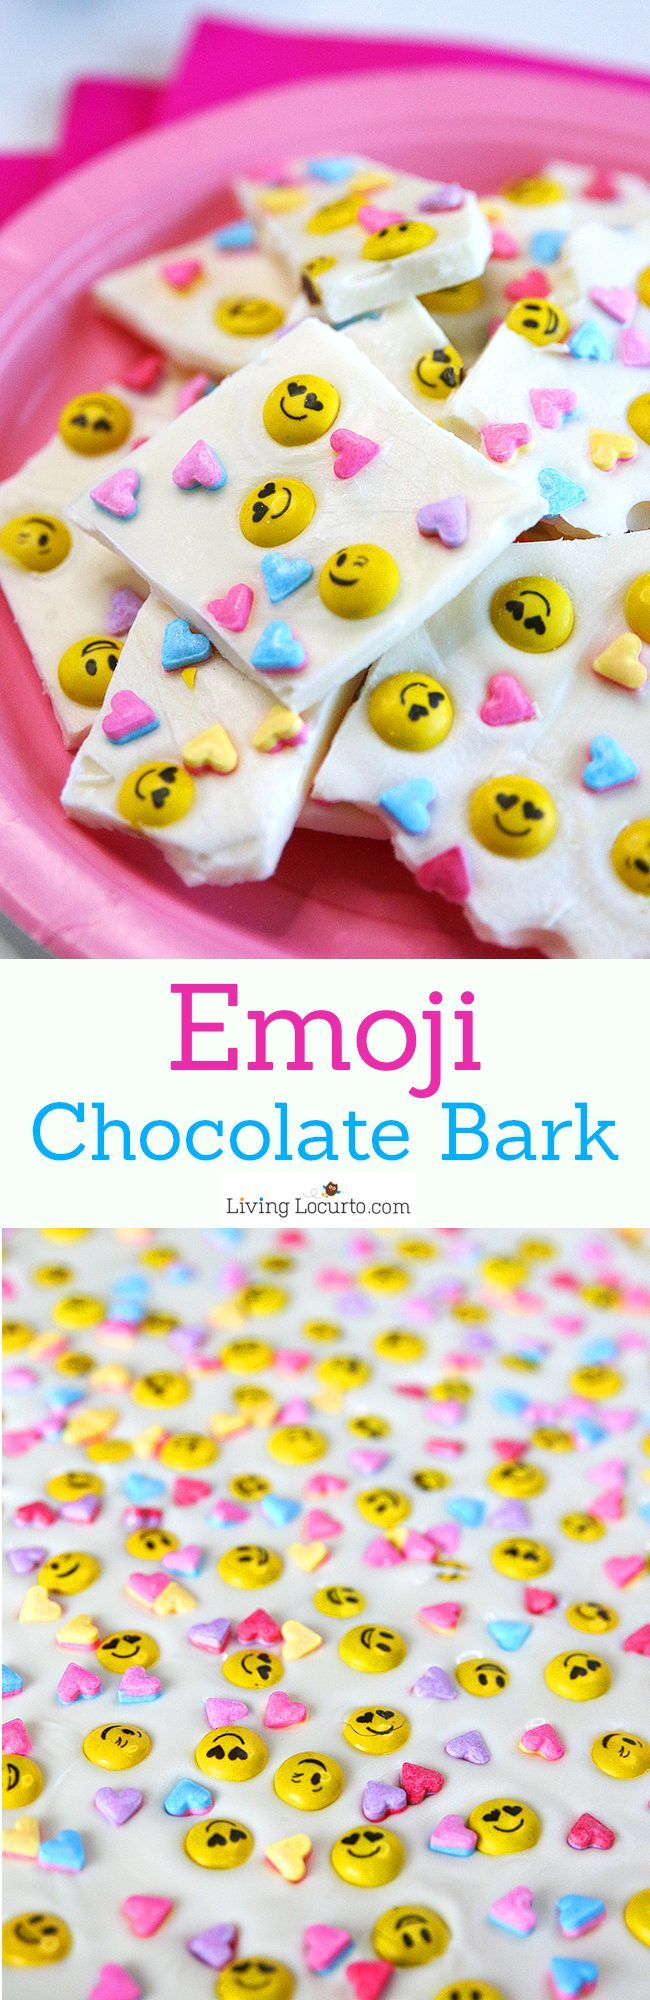 Emoji Chocolate Bark makes a simple and adorable Valentine's Day Treat! This white chocolate dessert is perfect for a school party or birthday.